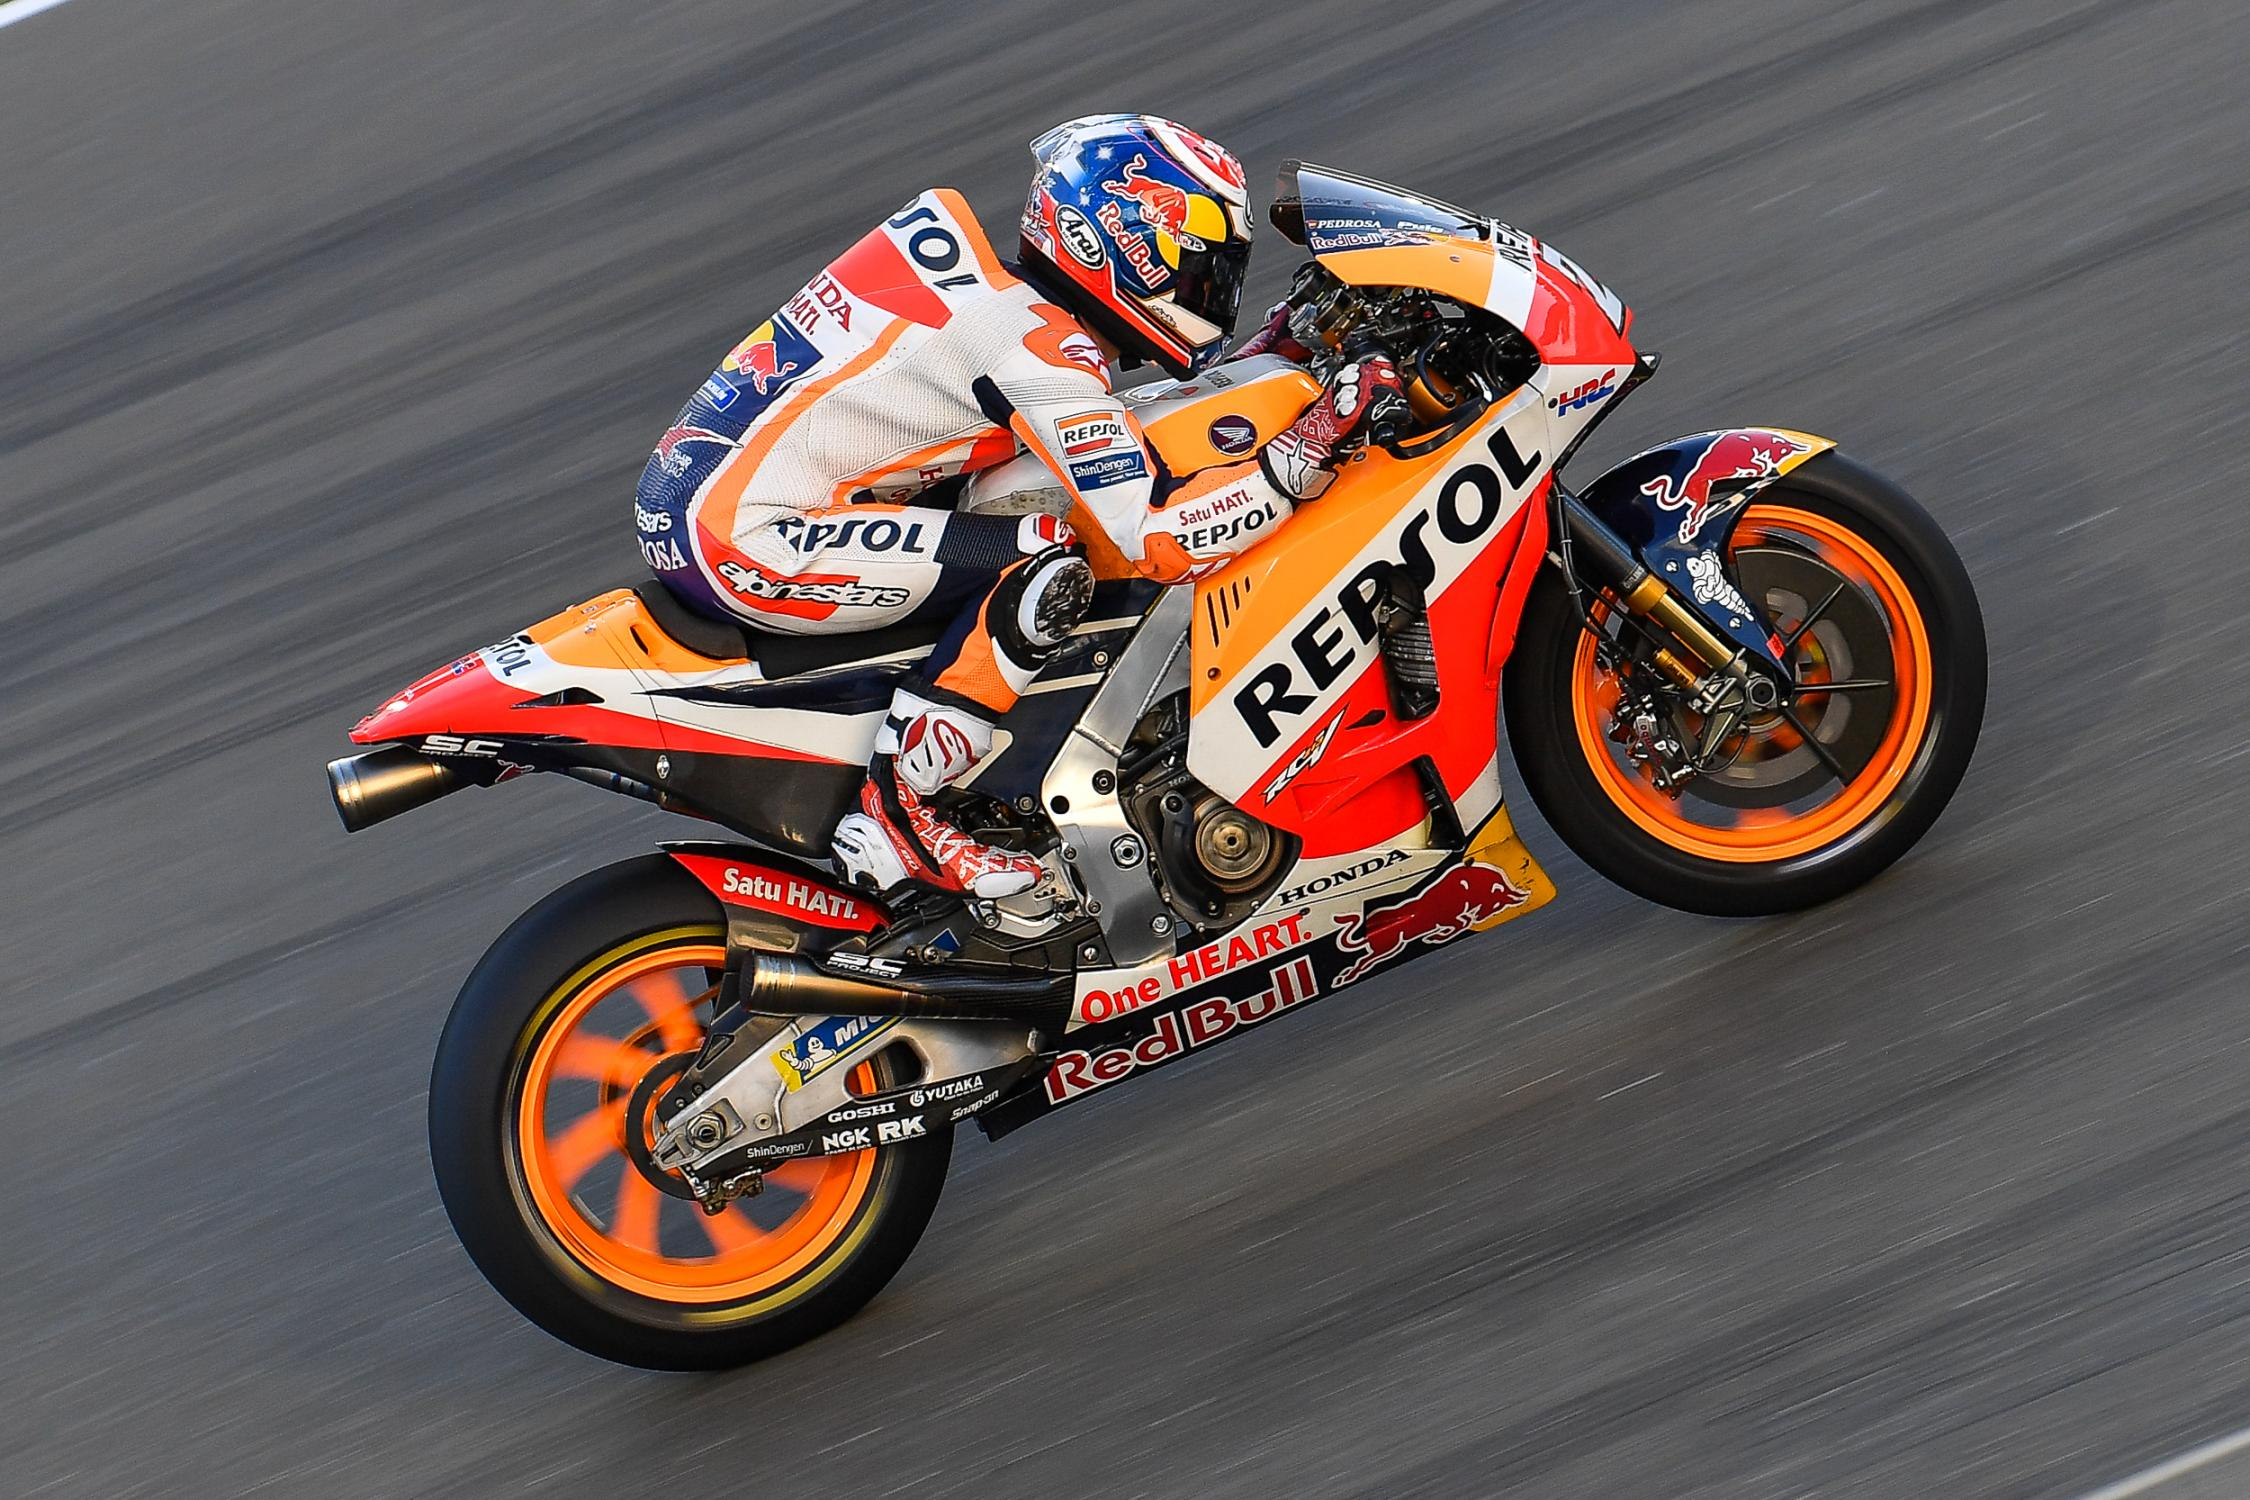 26-dani-pedrosa-esplg5_5394.gallery_full_top_fullscreen.jpg